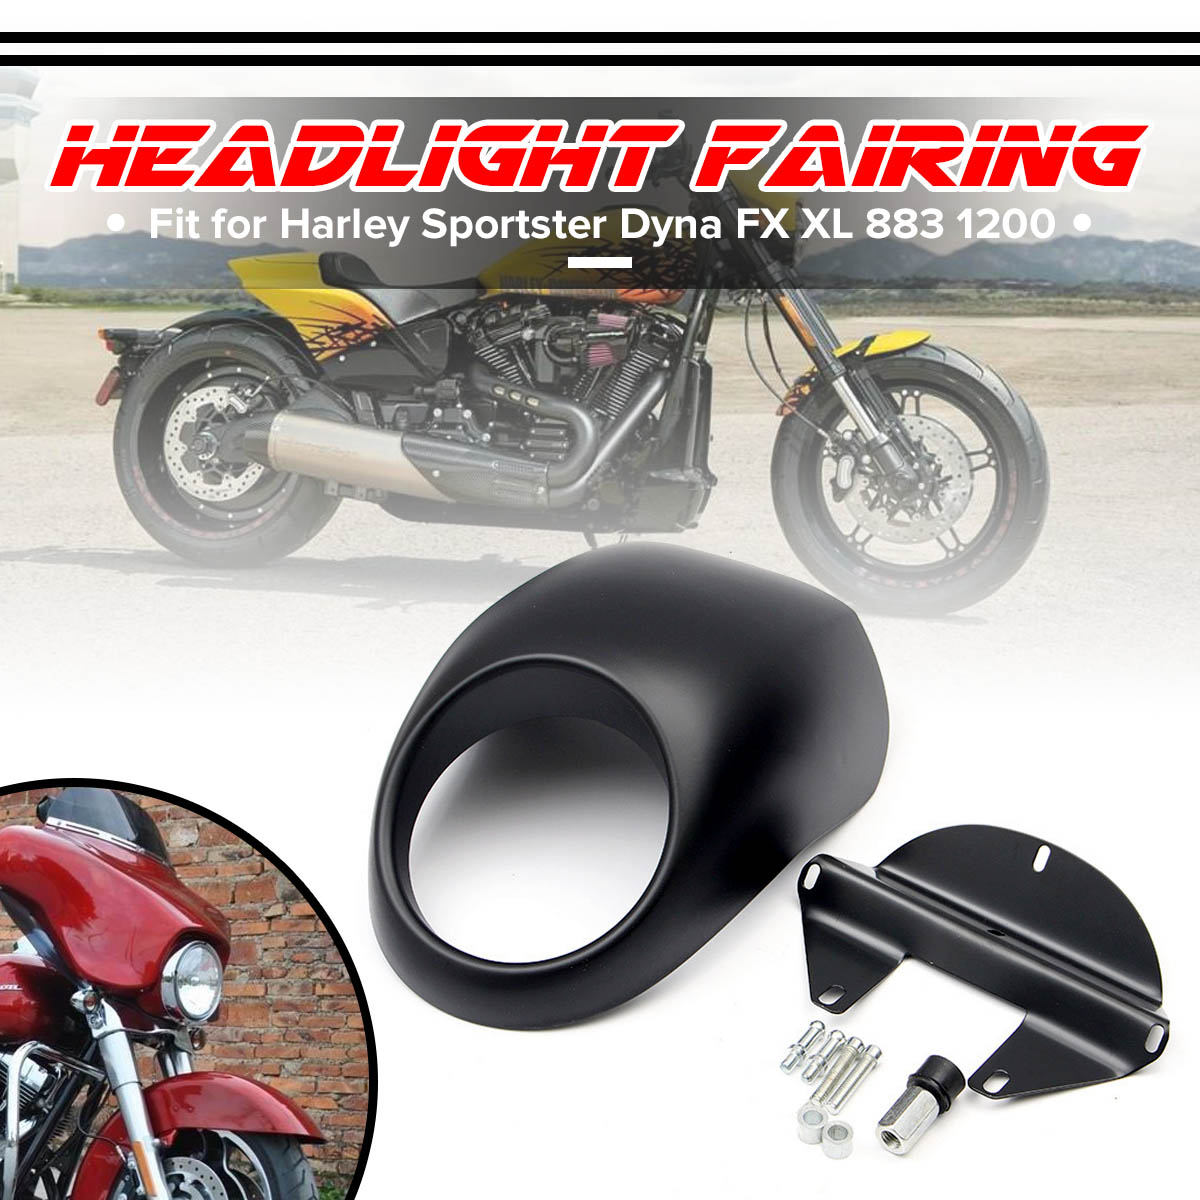 Motorcycle Head light Mask Headlight Fairing Front Cowl Fork Mount For Harley Sportster Dyna FX XL 883 1200 Motor Accessories